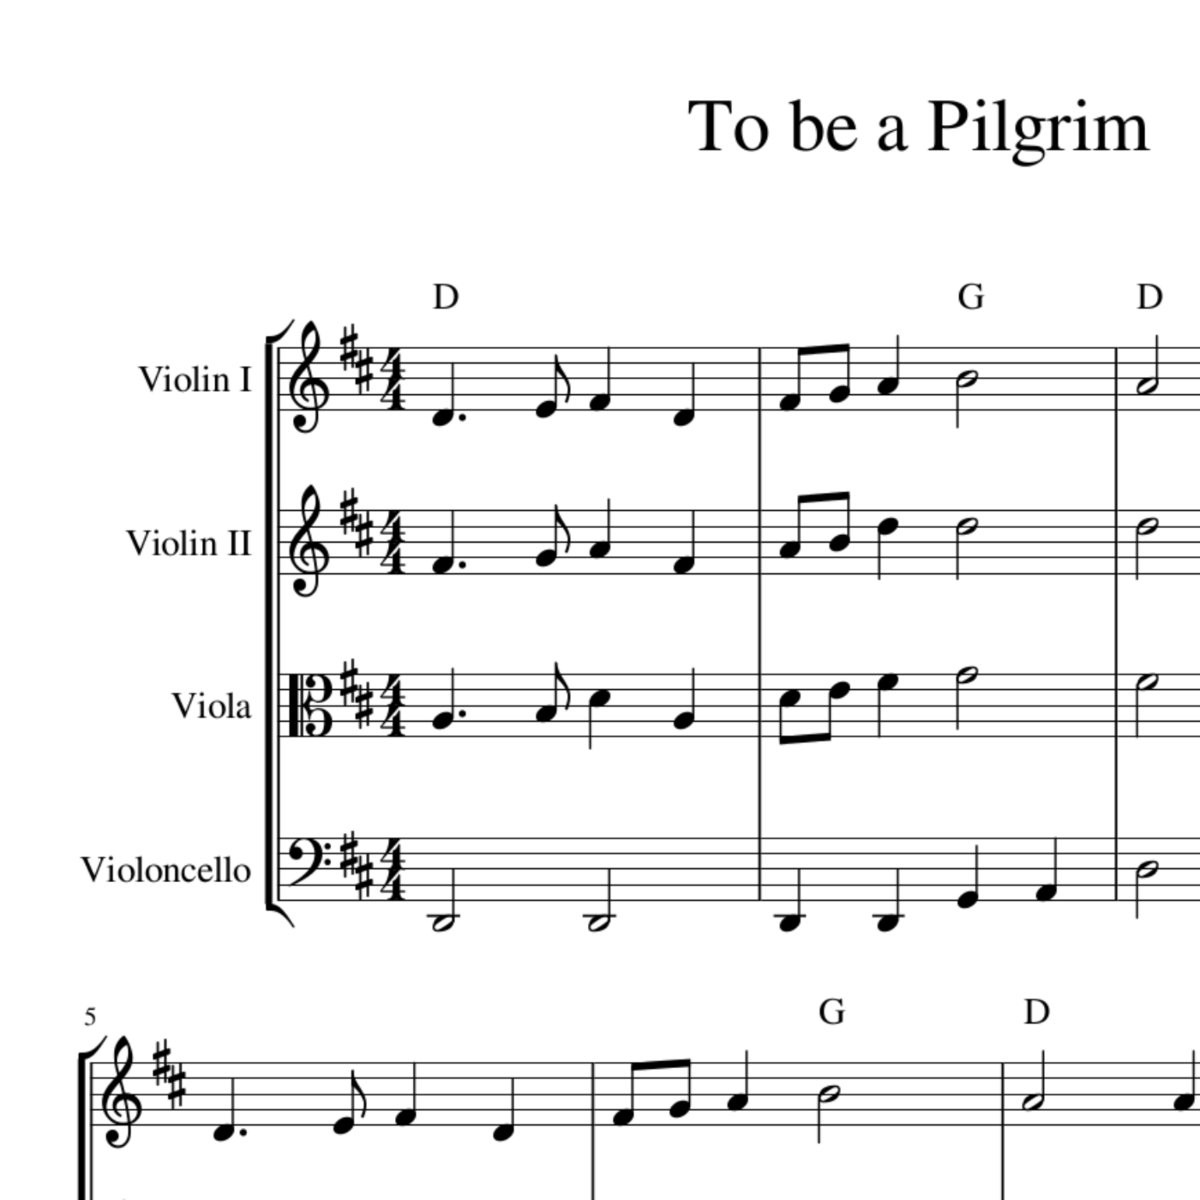 To Be a Pilgrim - celtic harmony arrangement sheet music for